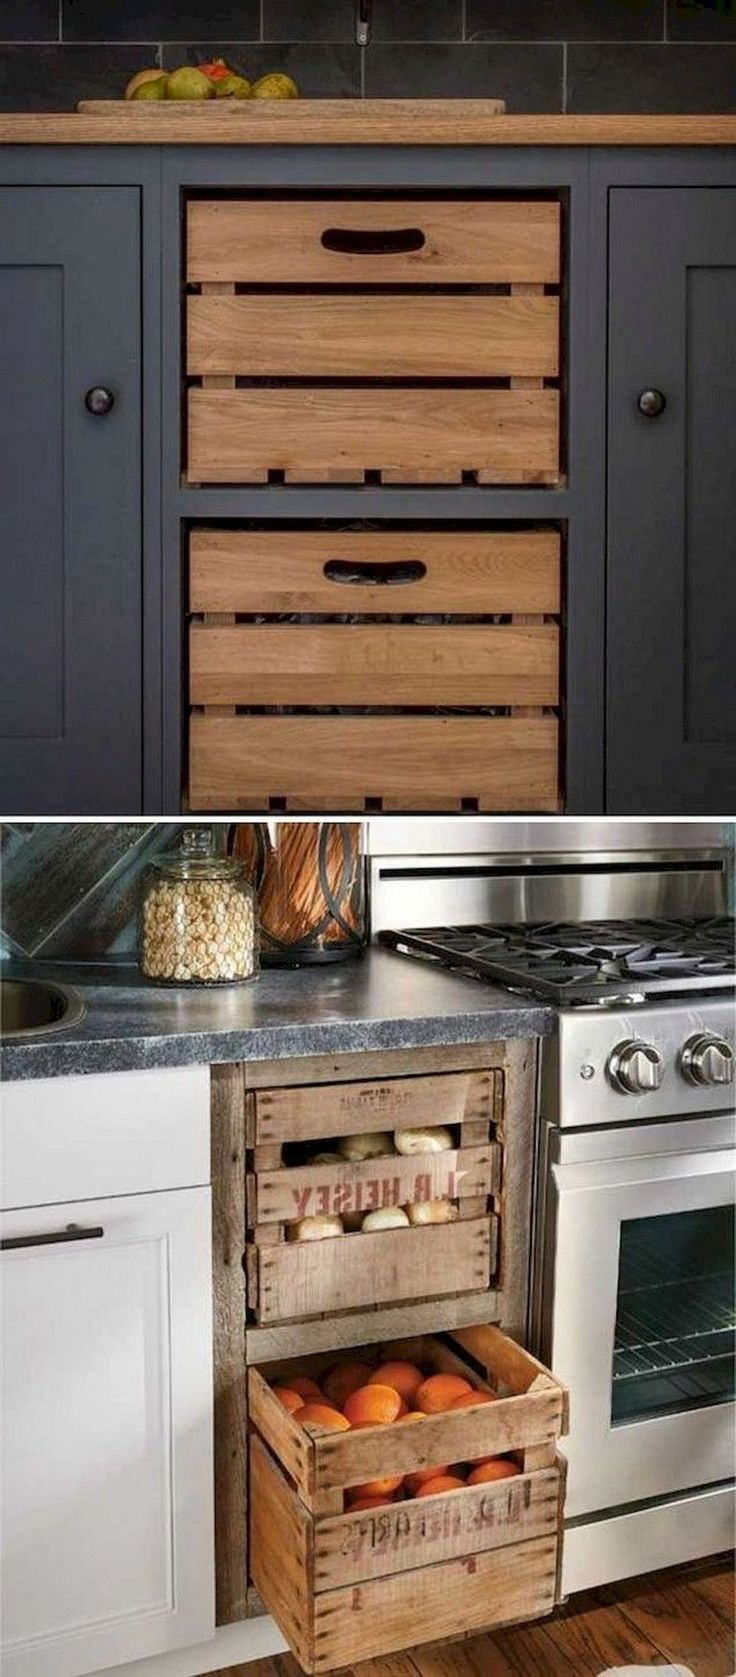 47+ Gorgeous Fresh Country Kitchen Decor Ideas 47+ Gorgeous Fresh Country Kitchen Decor Ideas